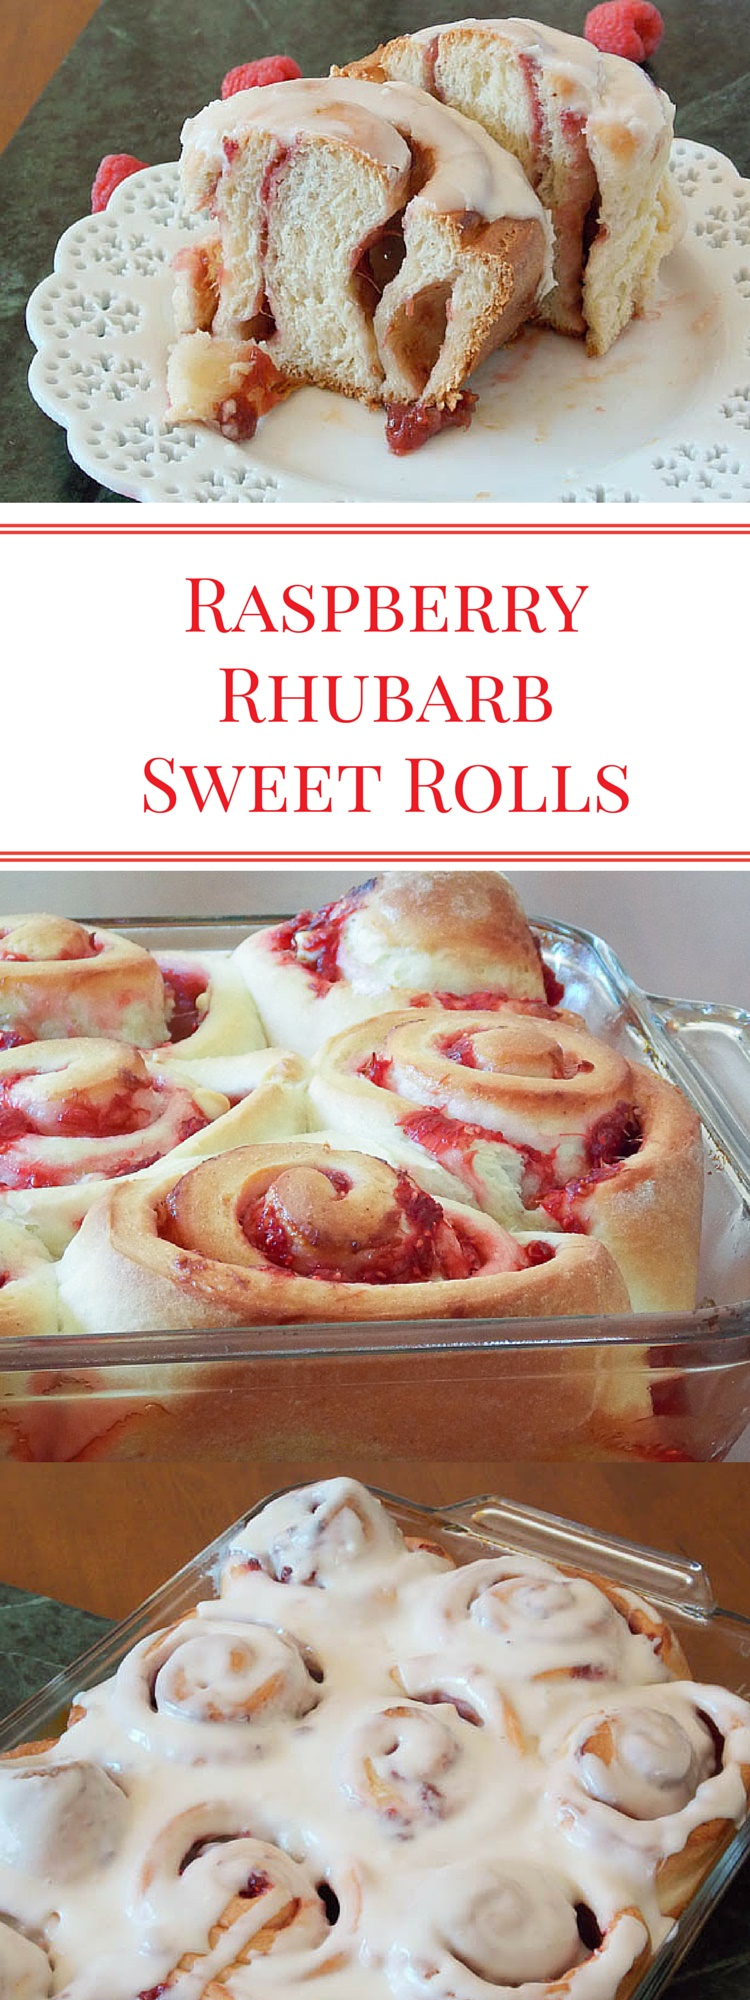 Raspberries and Rhubarb, cooked down with a little sugar and thickened into a sauce made a very delicious filling for this sweet roll dough! This could be a great brunch item or even dessert for your family table!